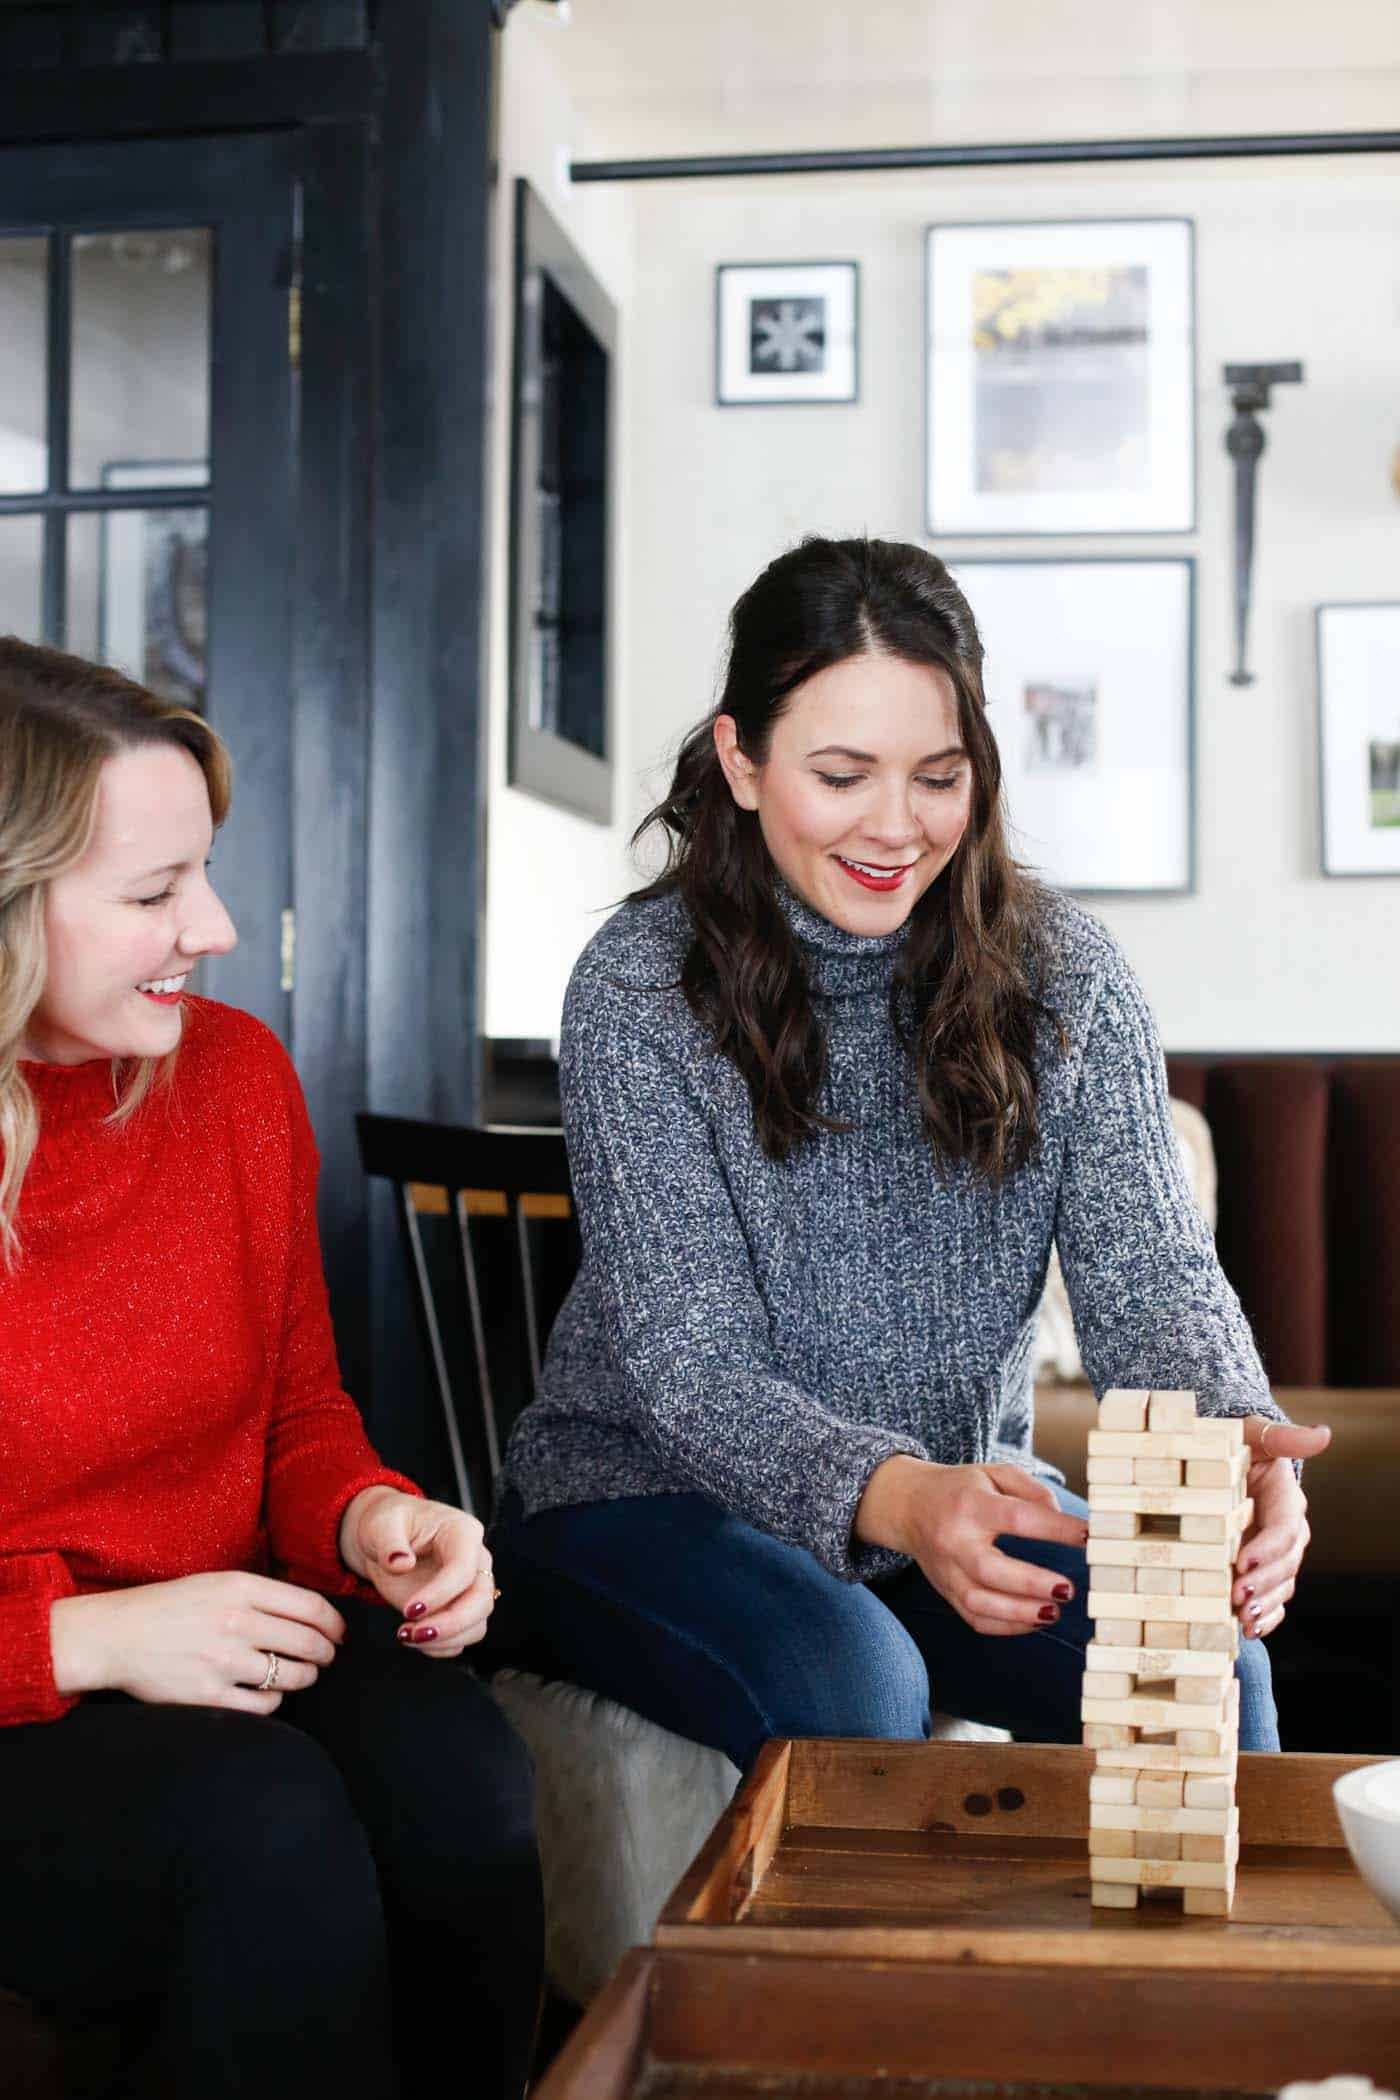 best board games for adults, best adult board games to play, fun board games for groups, jenga - My Style Vita @mystylevita